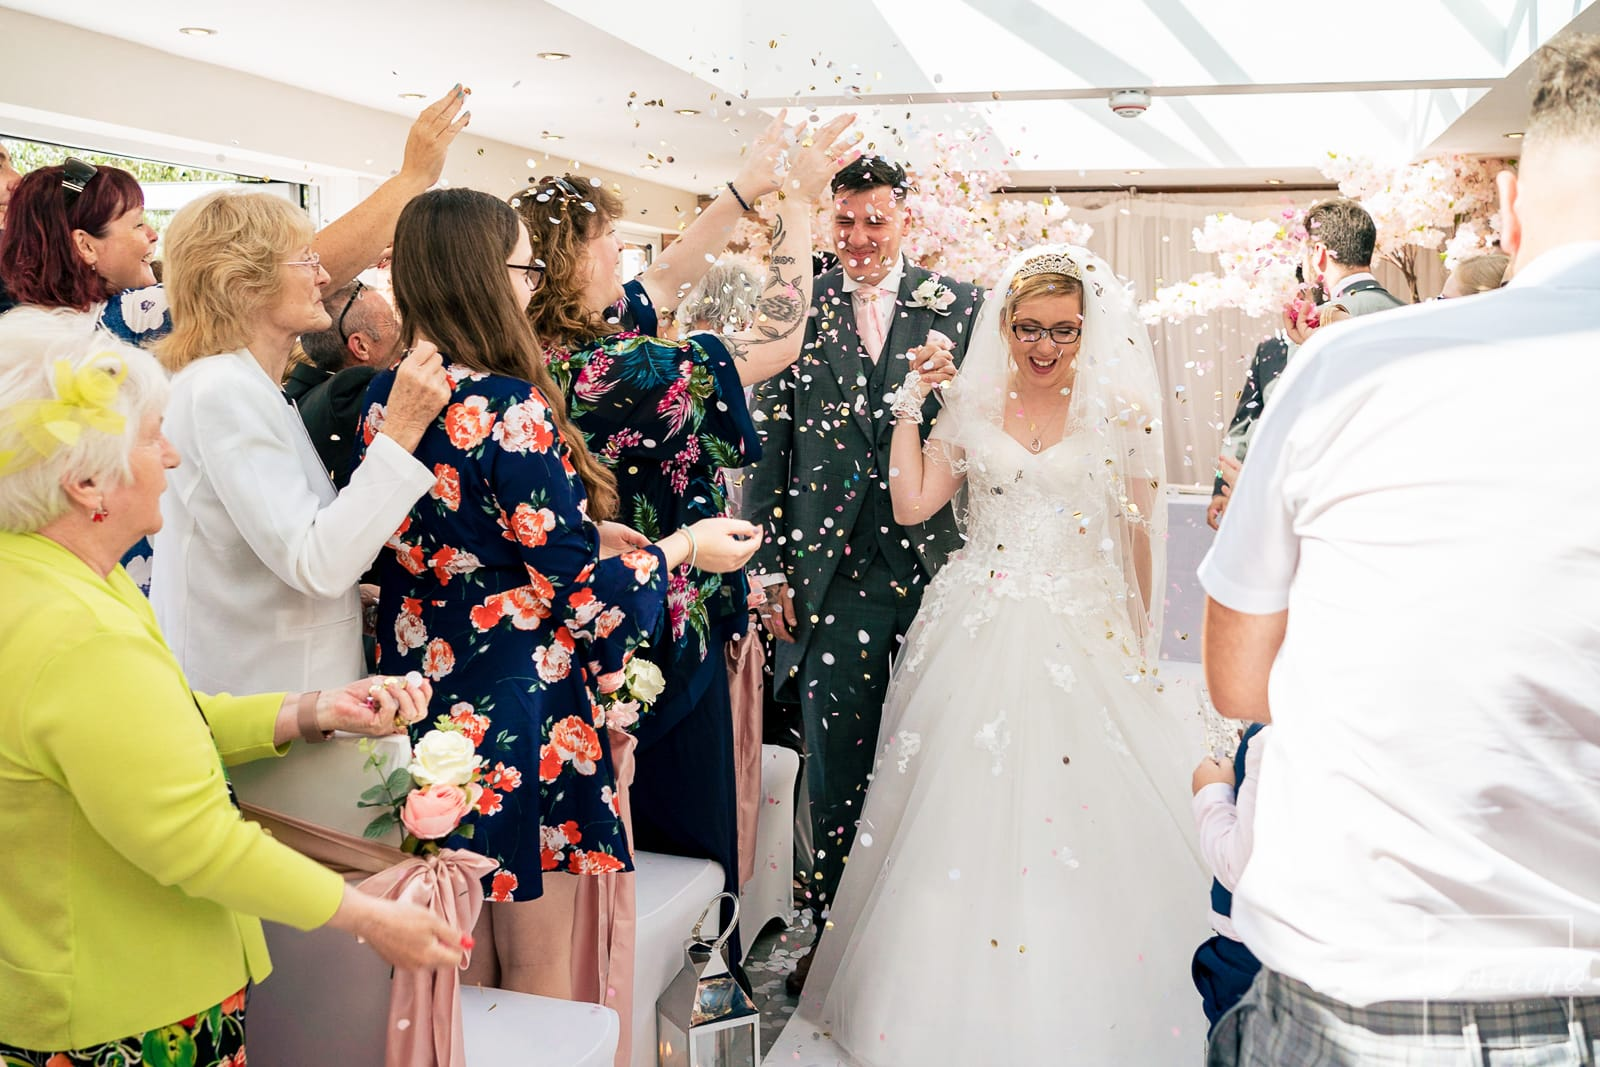 White Hart Inn at Moorwood Moor Wedding Photography - bride and groom walking through confetti at their wedding at the White Hart Inn Alfreton